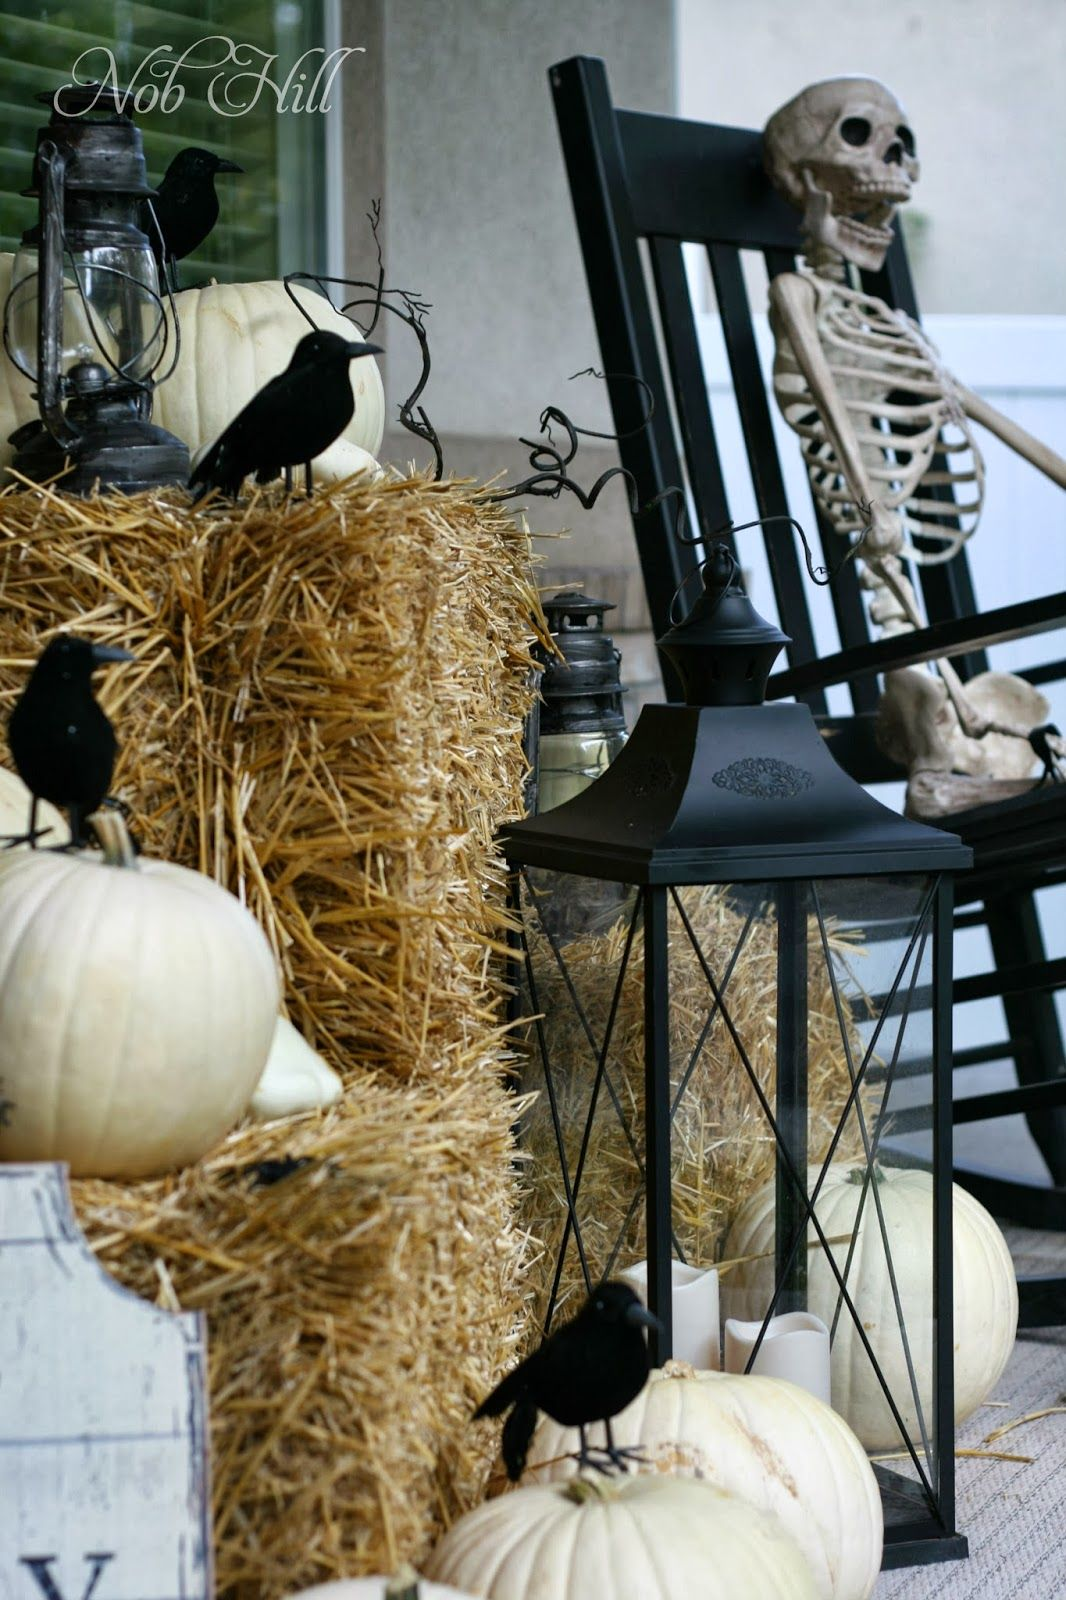 Porch Skeleton on the Chair Design - Scary Halloween Decorations That'll Give You The Jitters